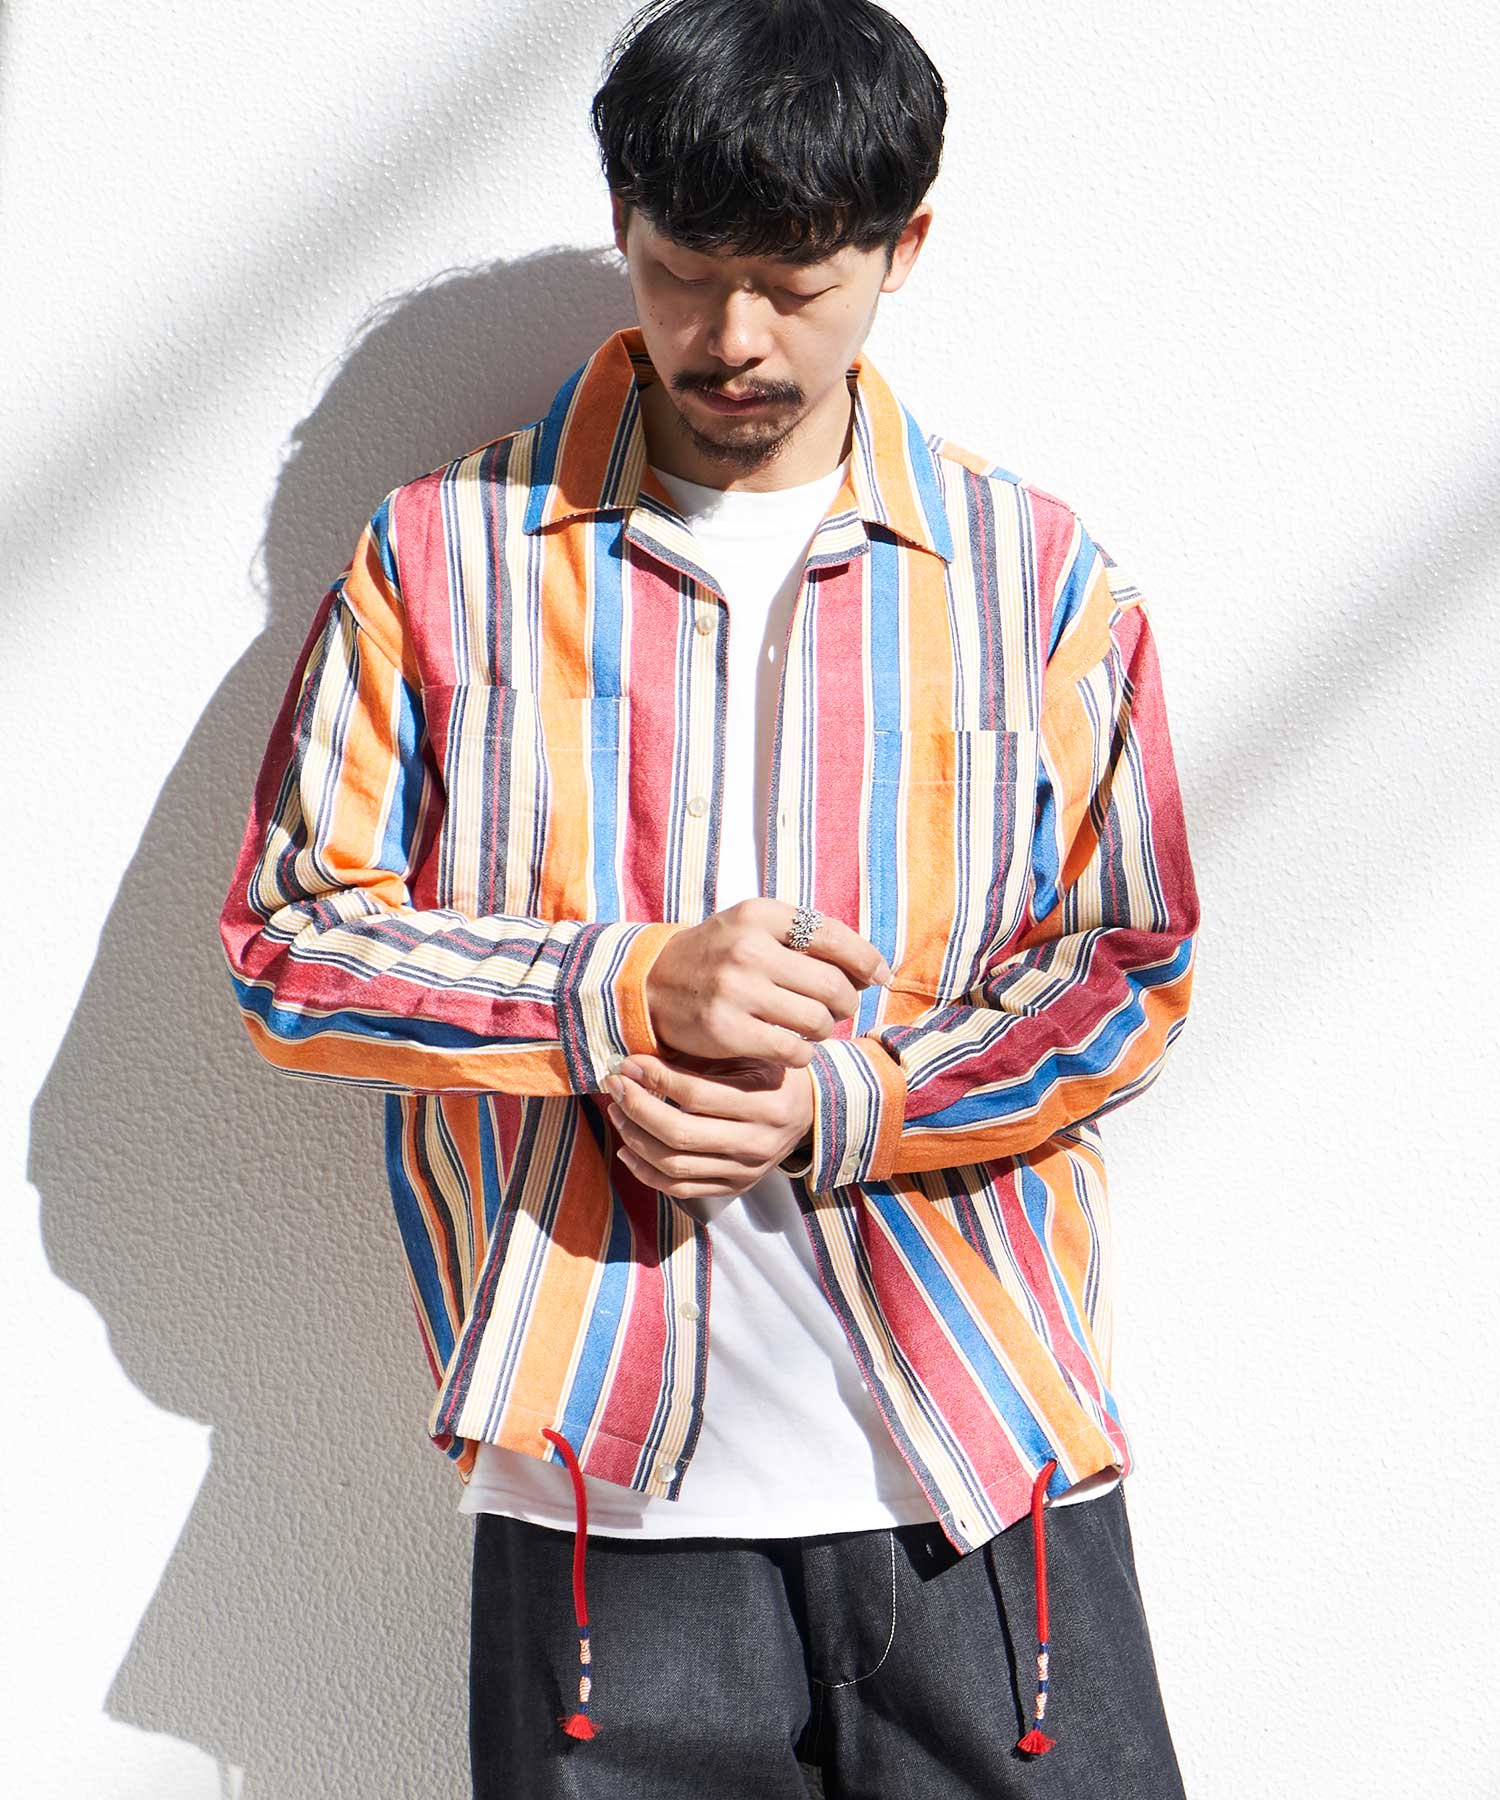 <img class='new_mark_img1' src='https://img.shop-pro.jp/img/new/icons15.gif' style='border:none;display:inline;margin:0px;padding:0px;width:auto;' />【wakami】OPEN COLLAR L/S SHIRTS MLT